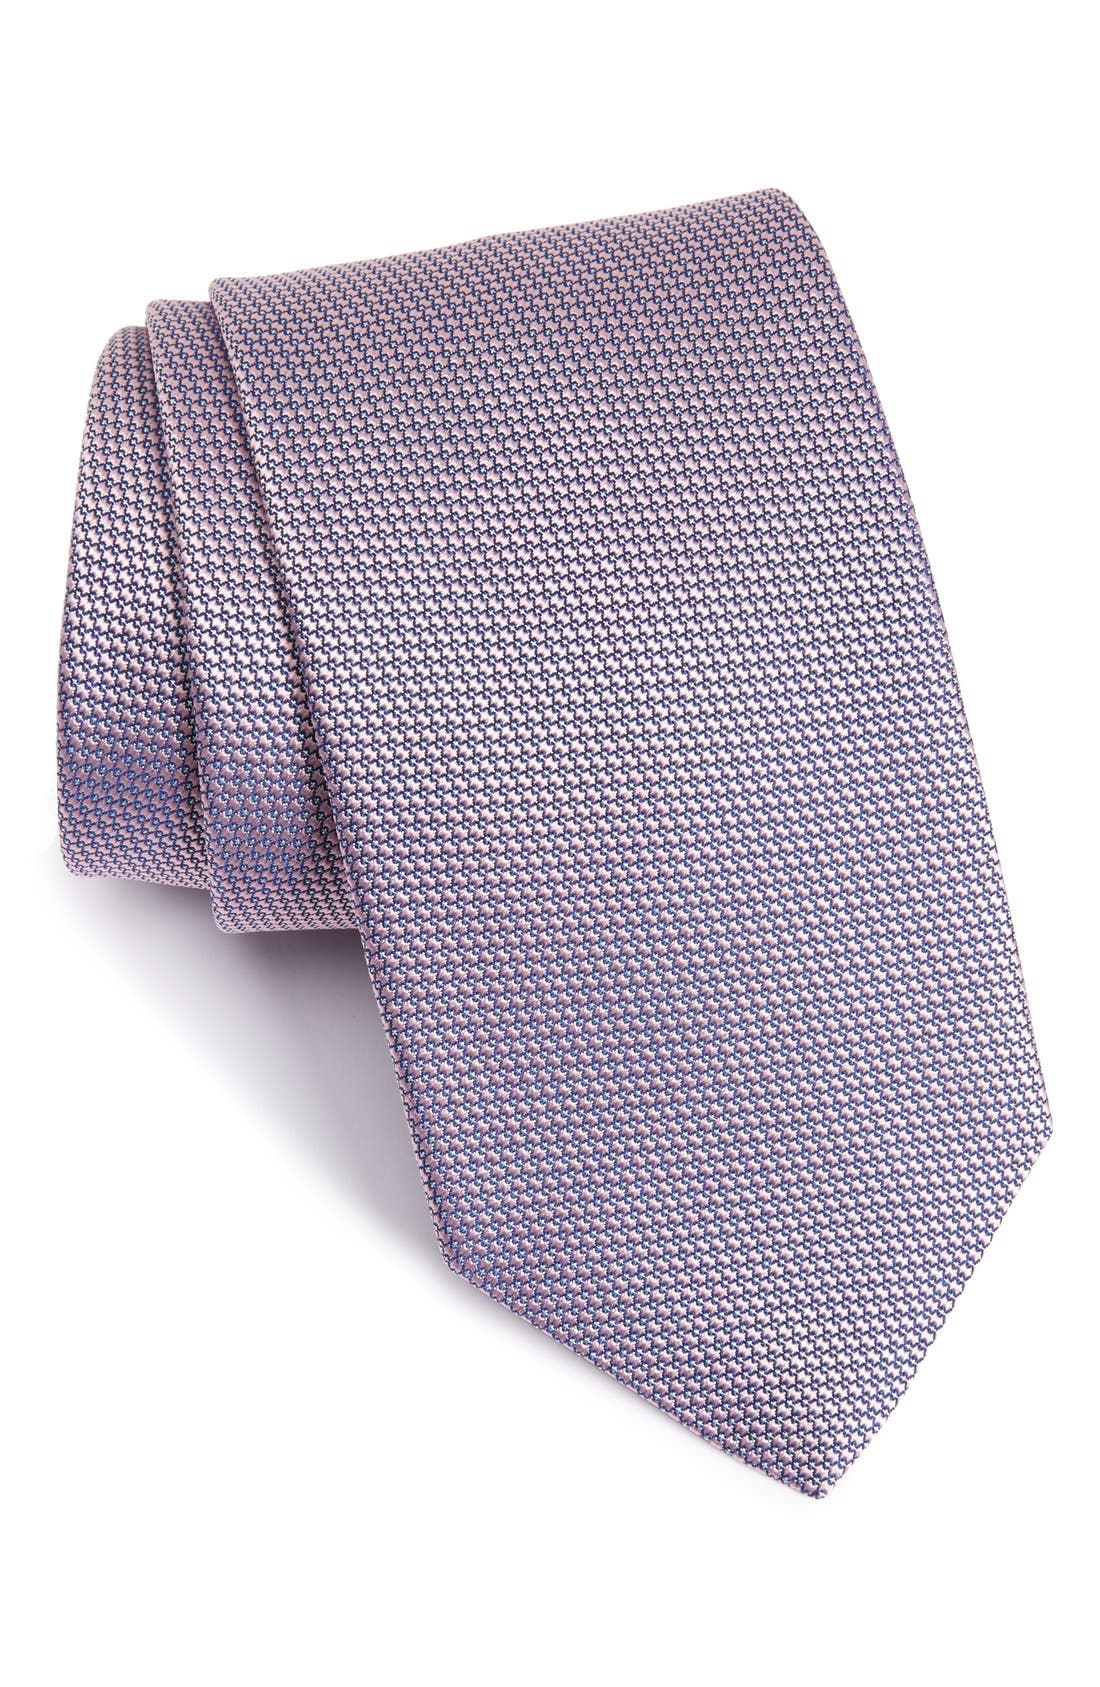 Microdot Silk Tie,                         Main,                         color, Pink